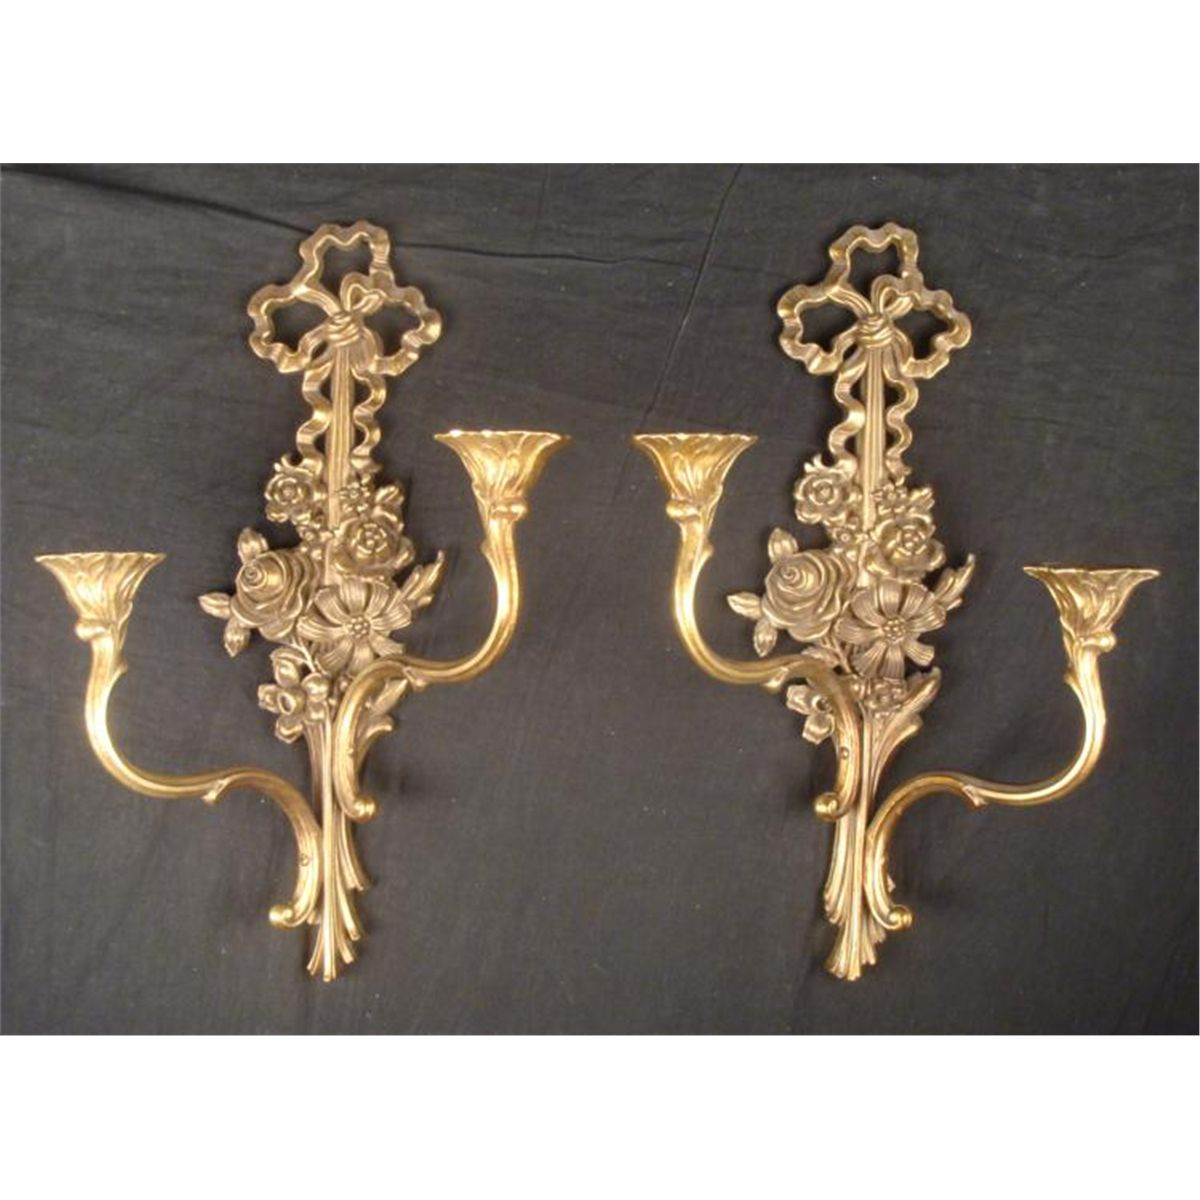 2 candle holders wall mounted syroco wood art nouveau